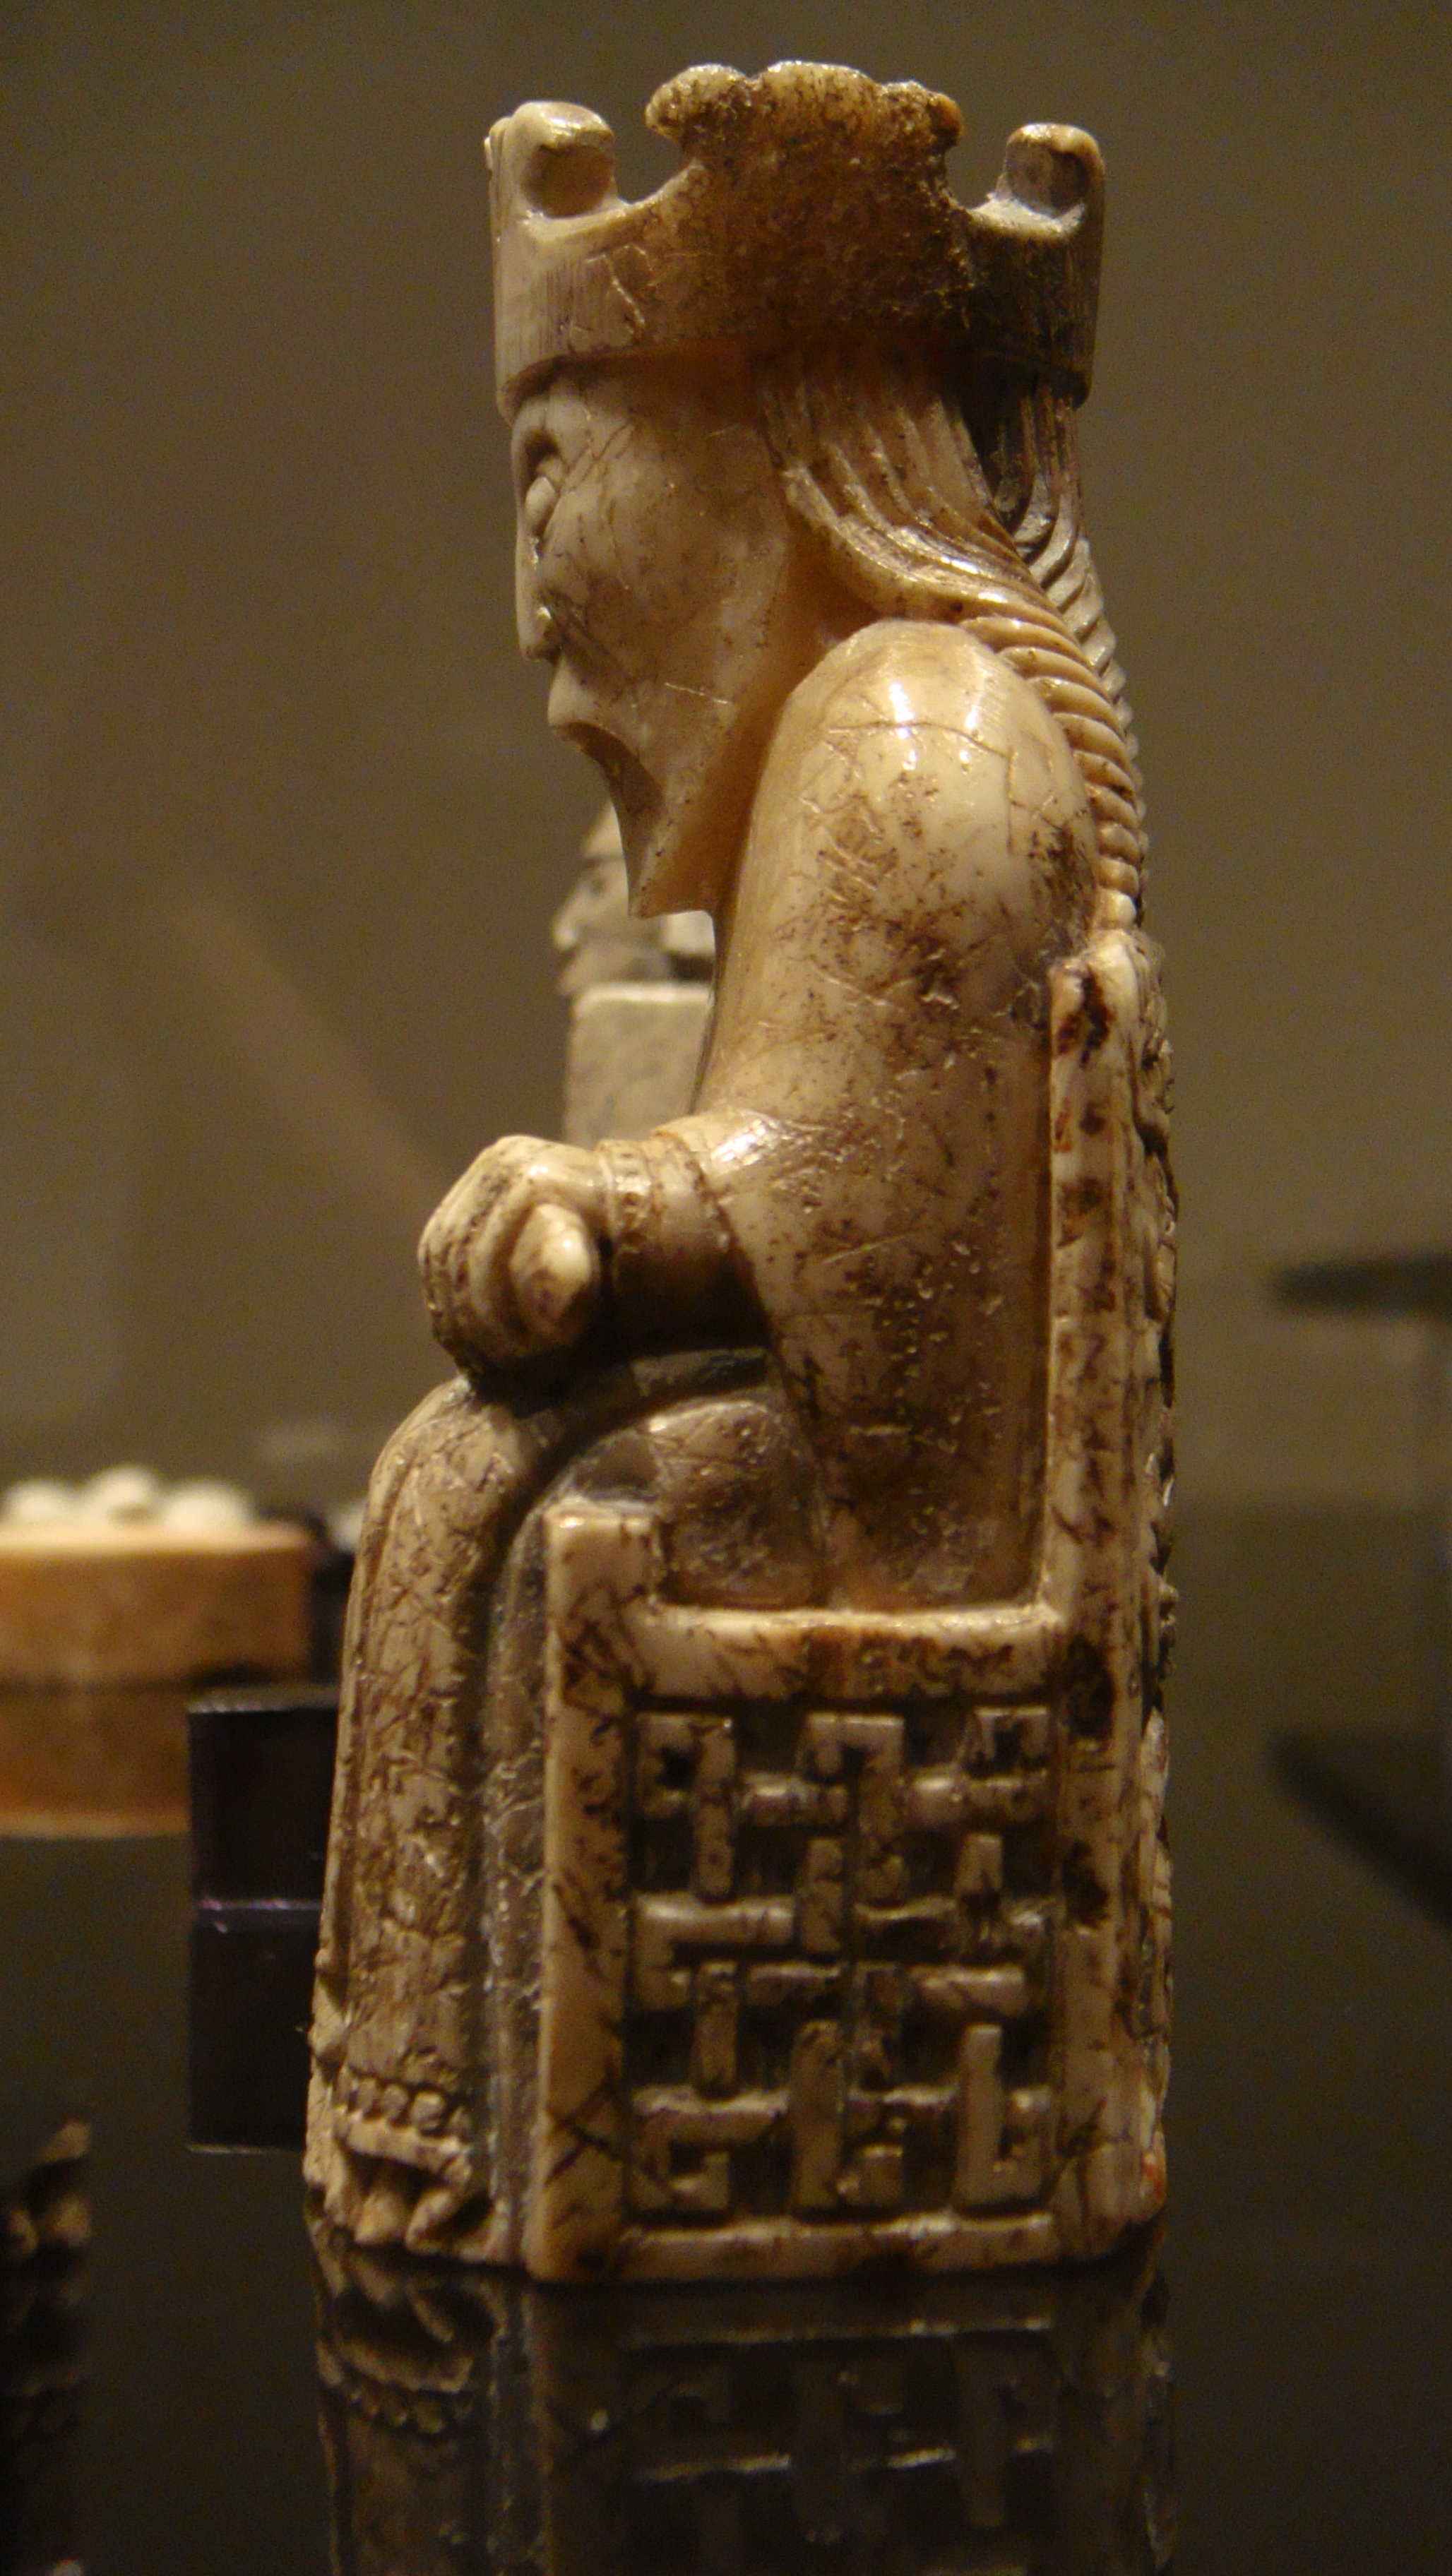 1000 images about lewis chessmen on pinterest - Lewis chessmen set ...